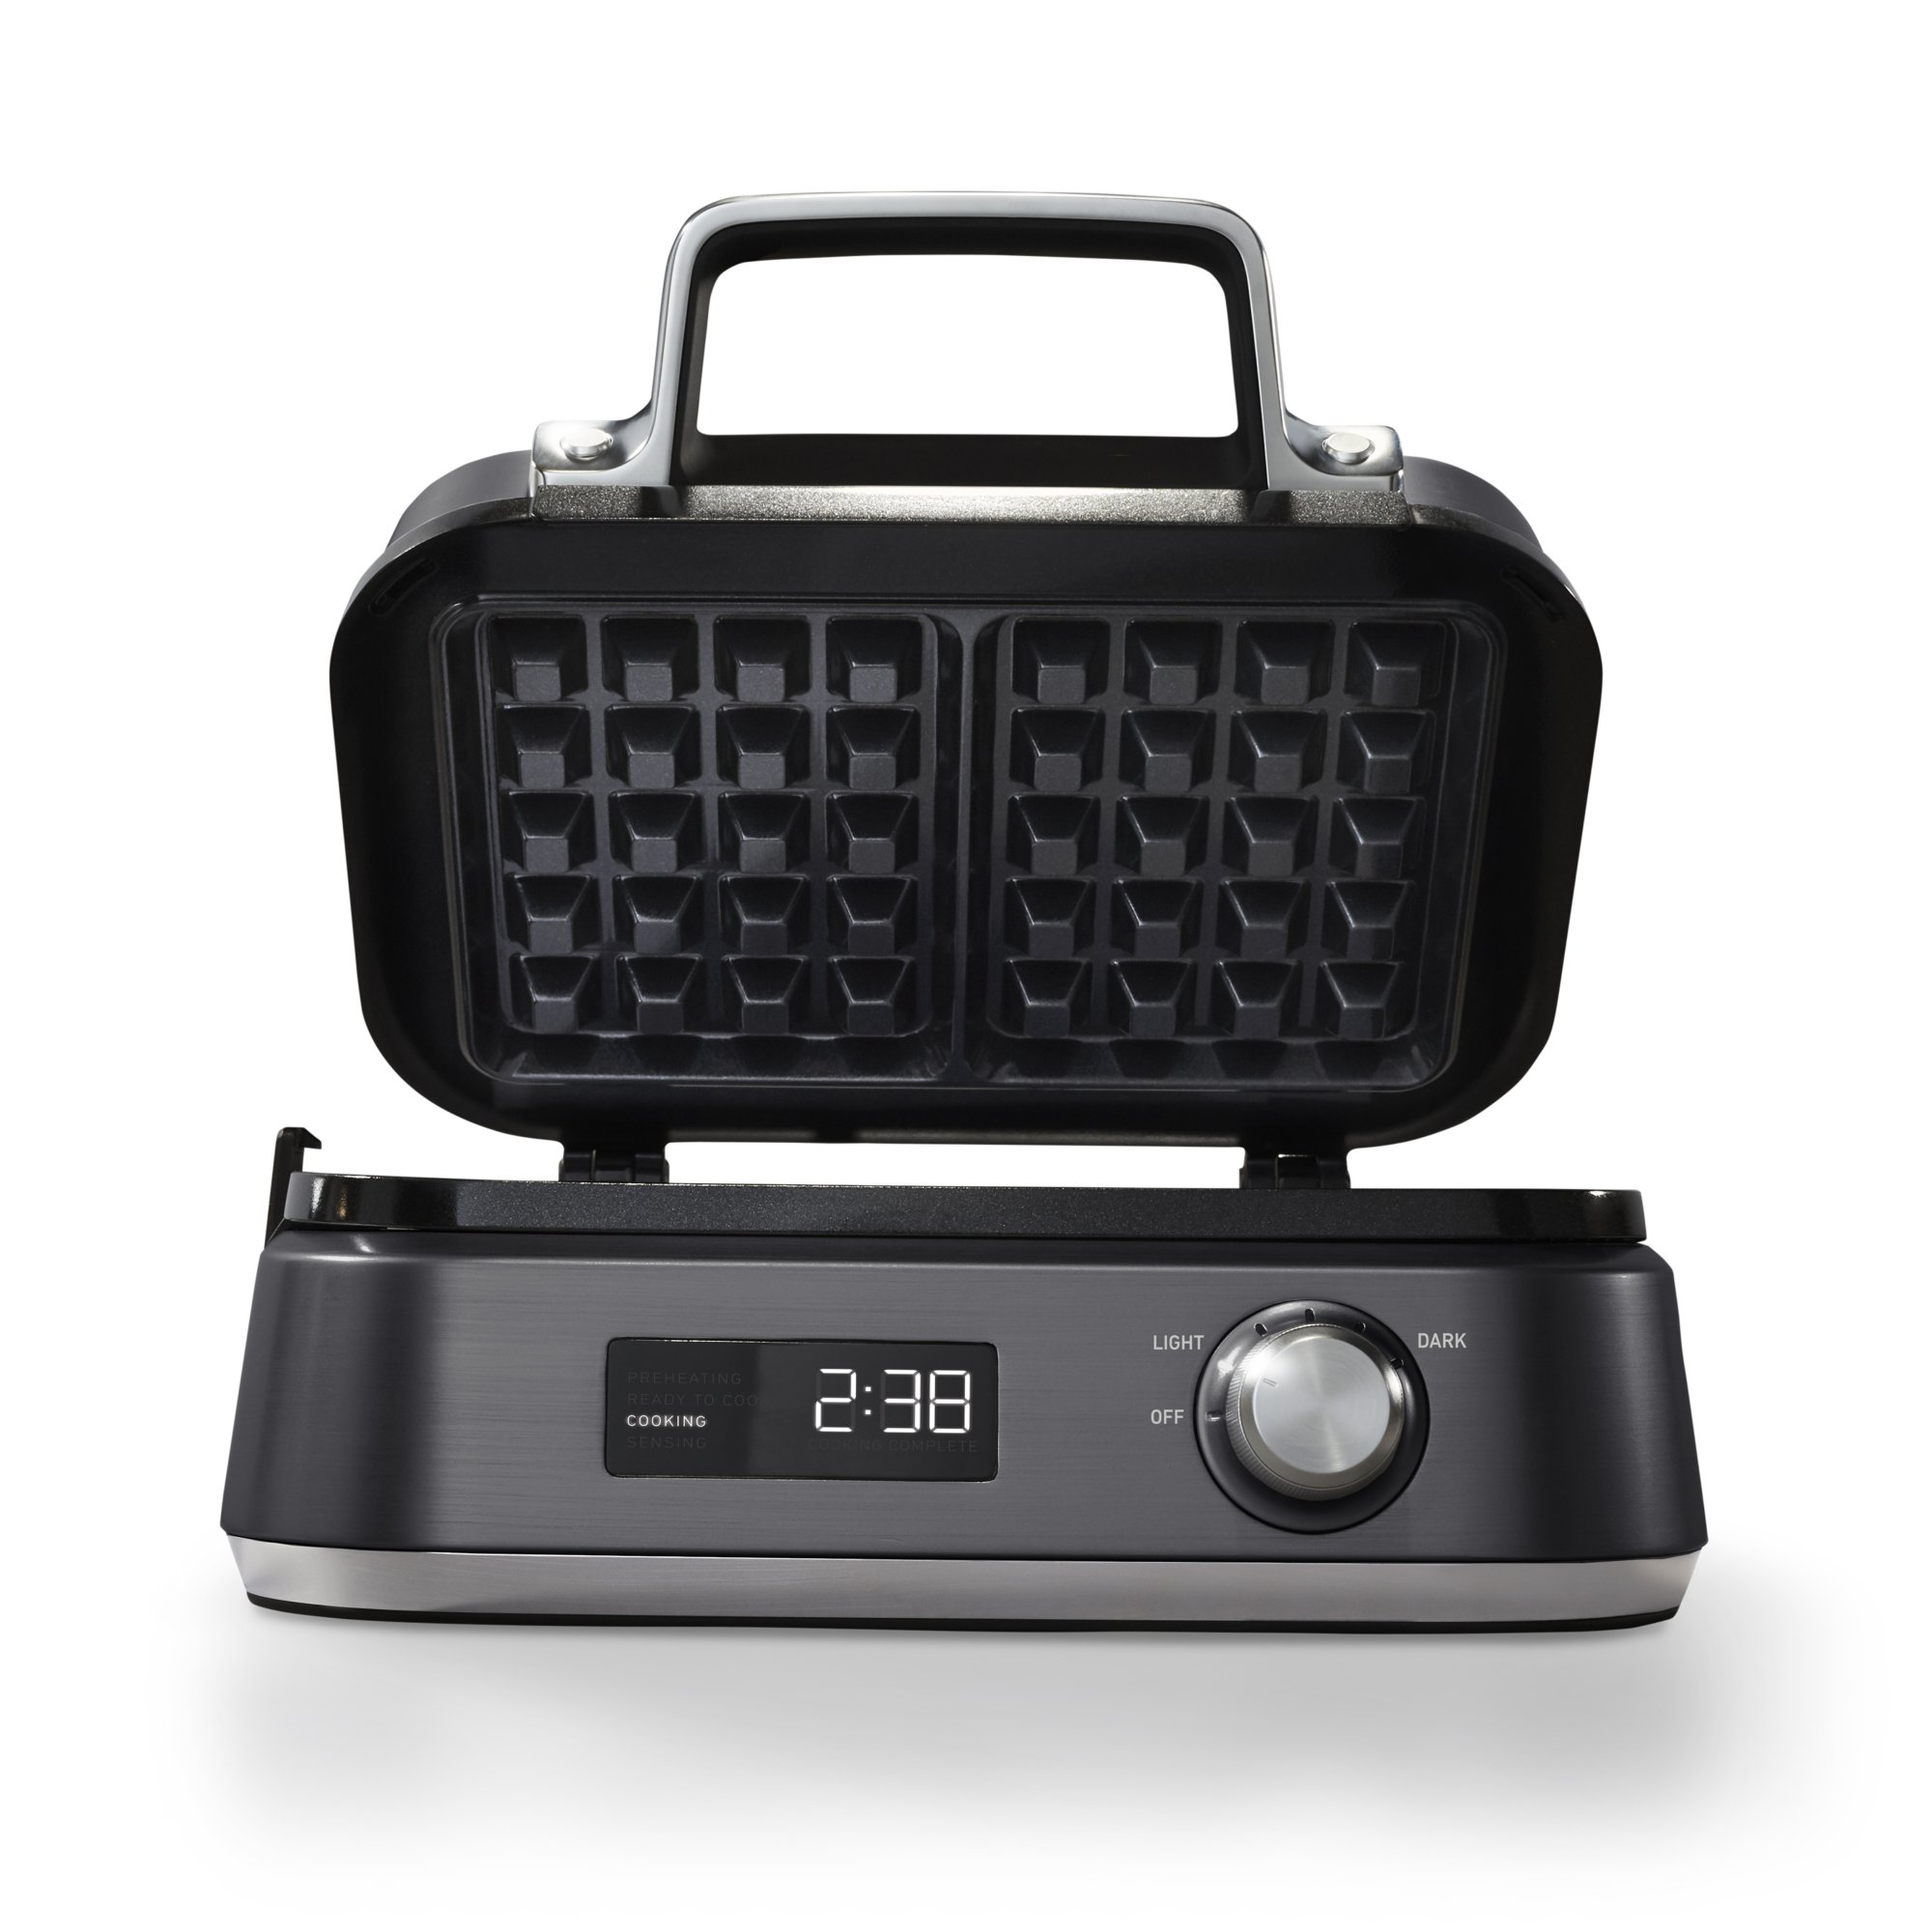 Calphalon IntelliCrisp™ Waffle Maker, Dark Stainless Steel